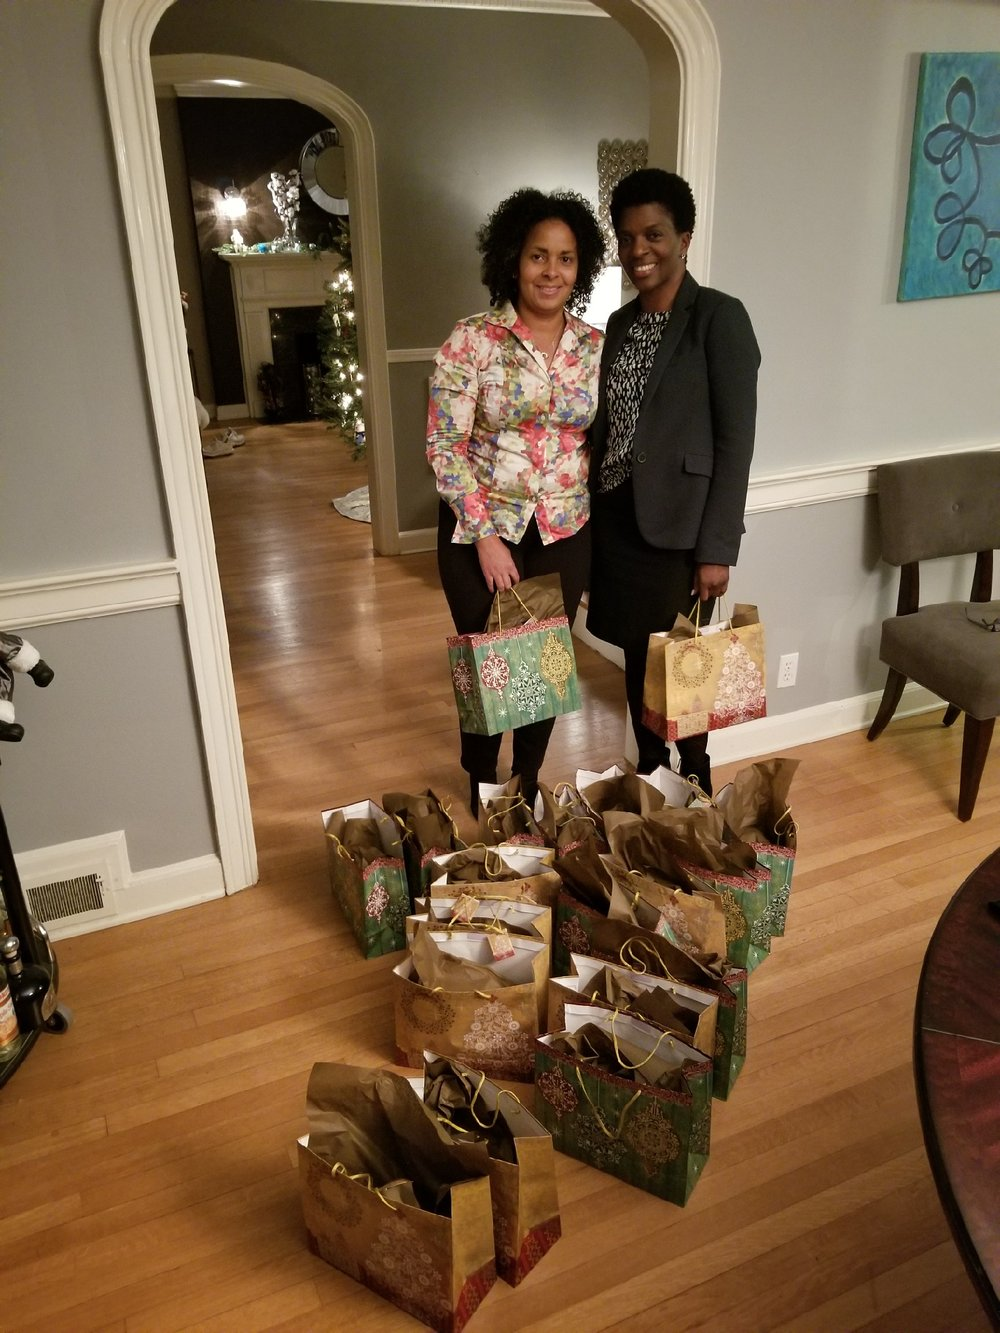 A special THANK YOU! To our friends and partners at the JACK & JILL  organization of New Jersey for their donation of Holiday Care package. These packages were distributed during the holidays to women who were recent victims of a fire. Each bag contained a gift card for $25 in addition to those essential grooming items every woman needs to start her day.